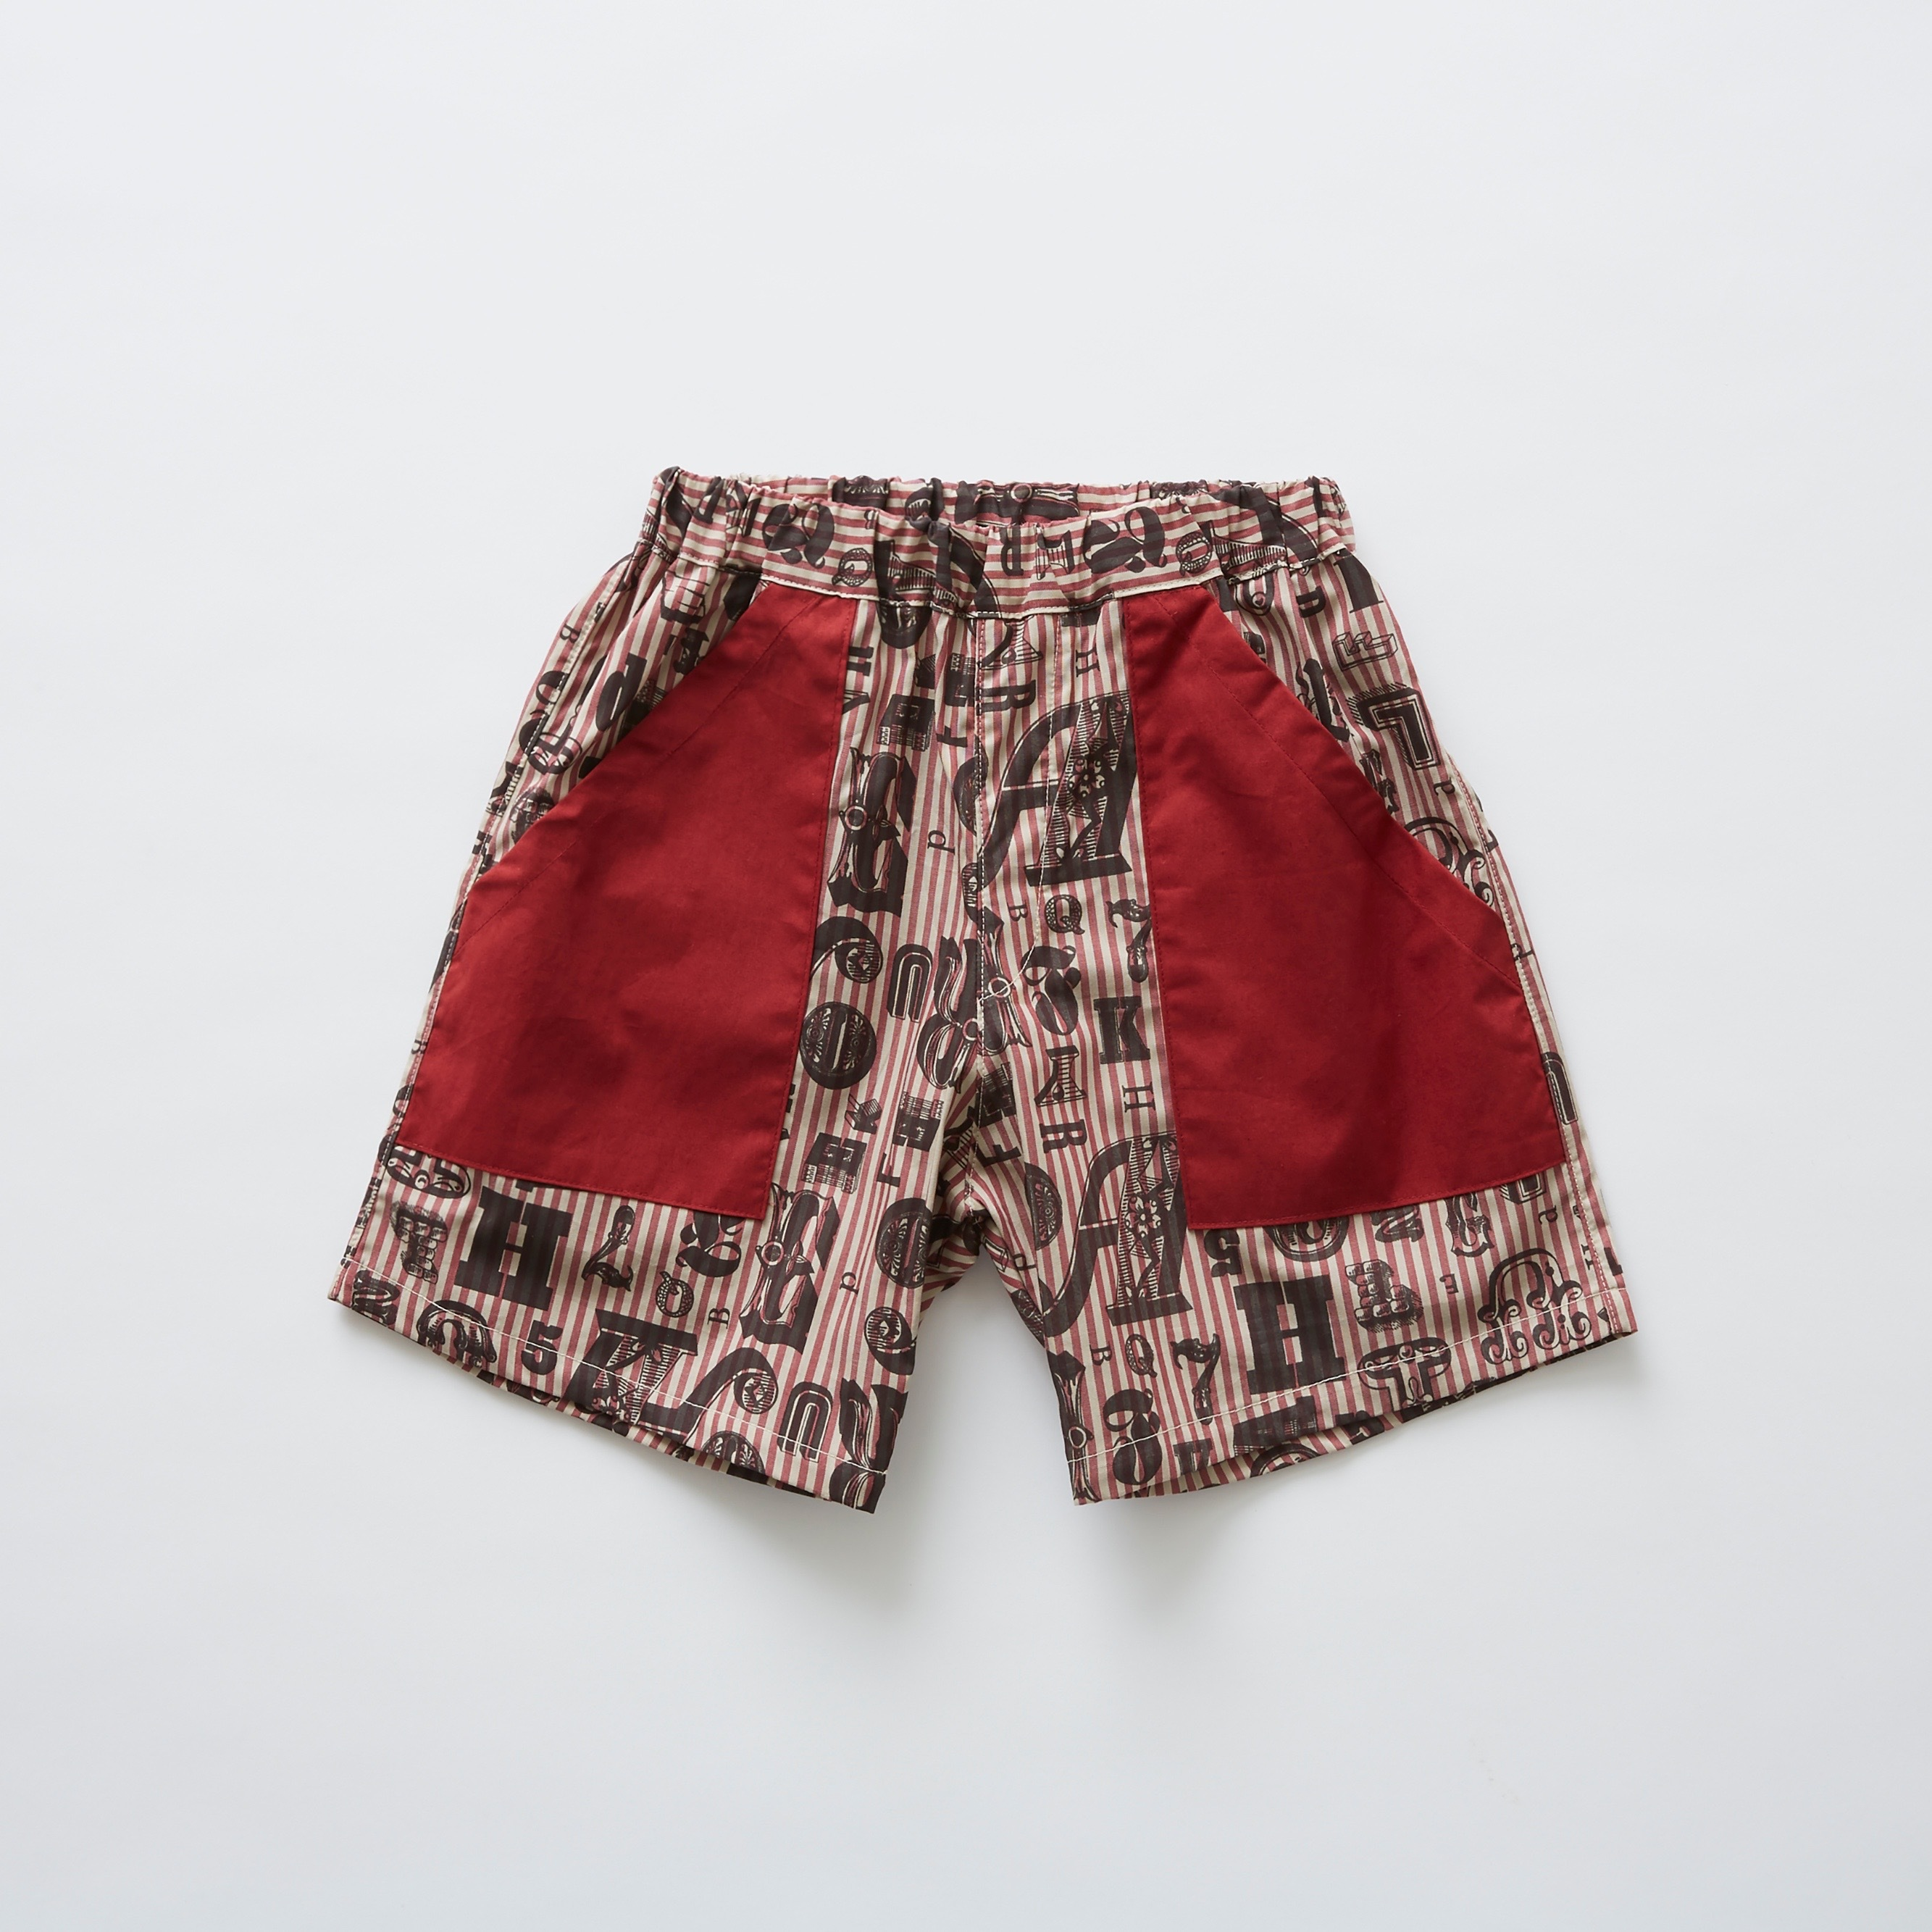 《eLfinFolk 2019SS》stripe × alphabetic print shorts / burgundy / 110-130cm